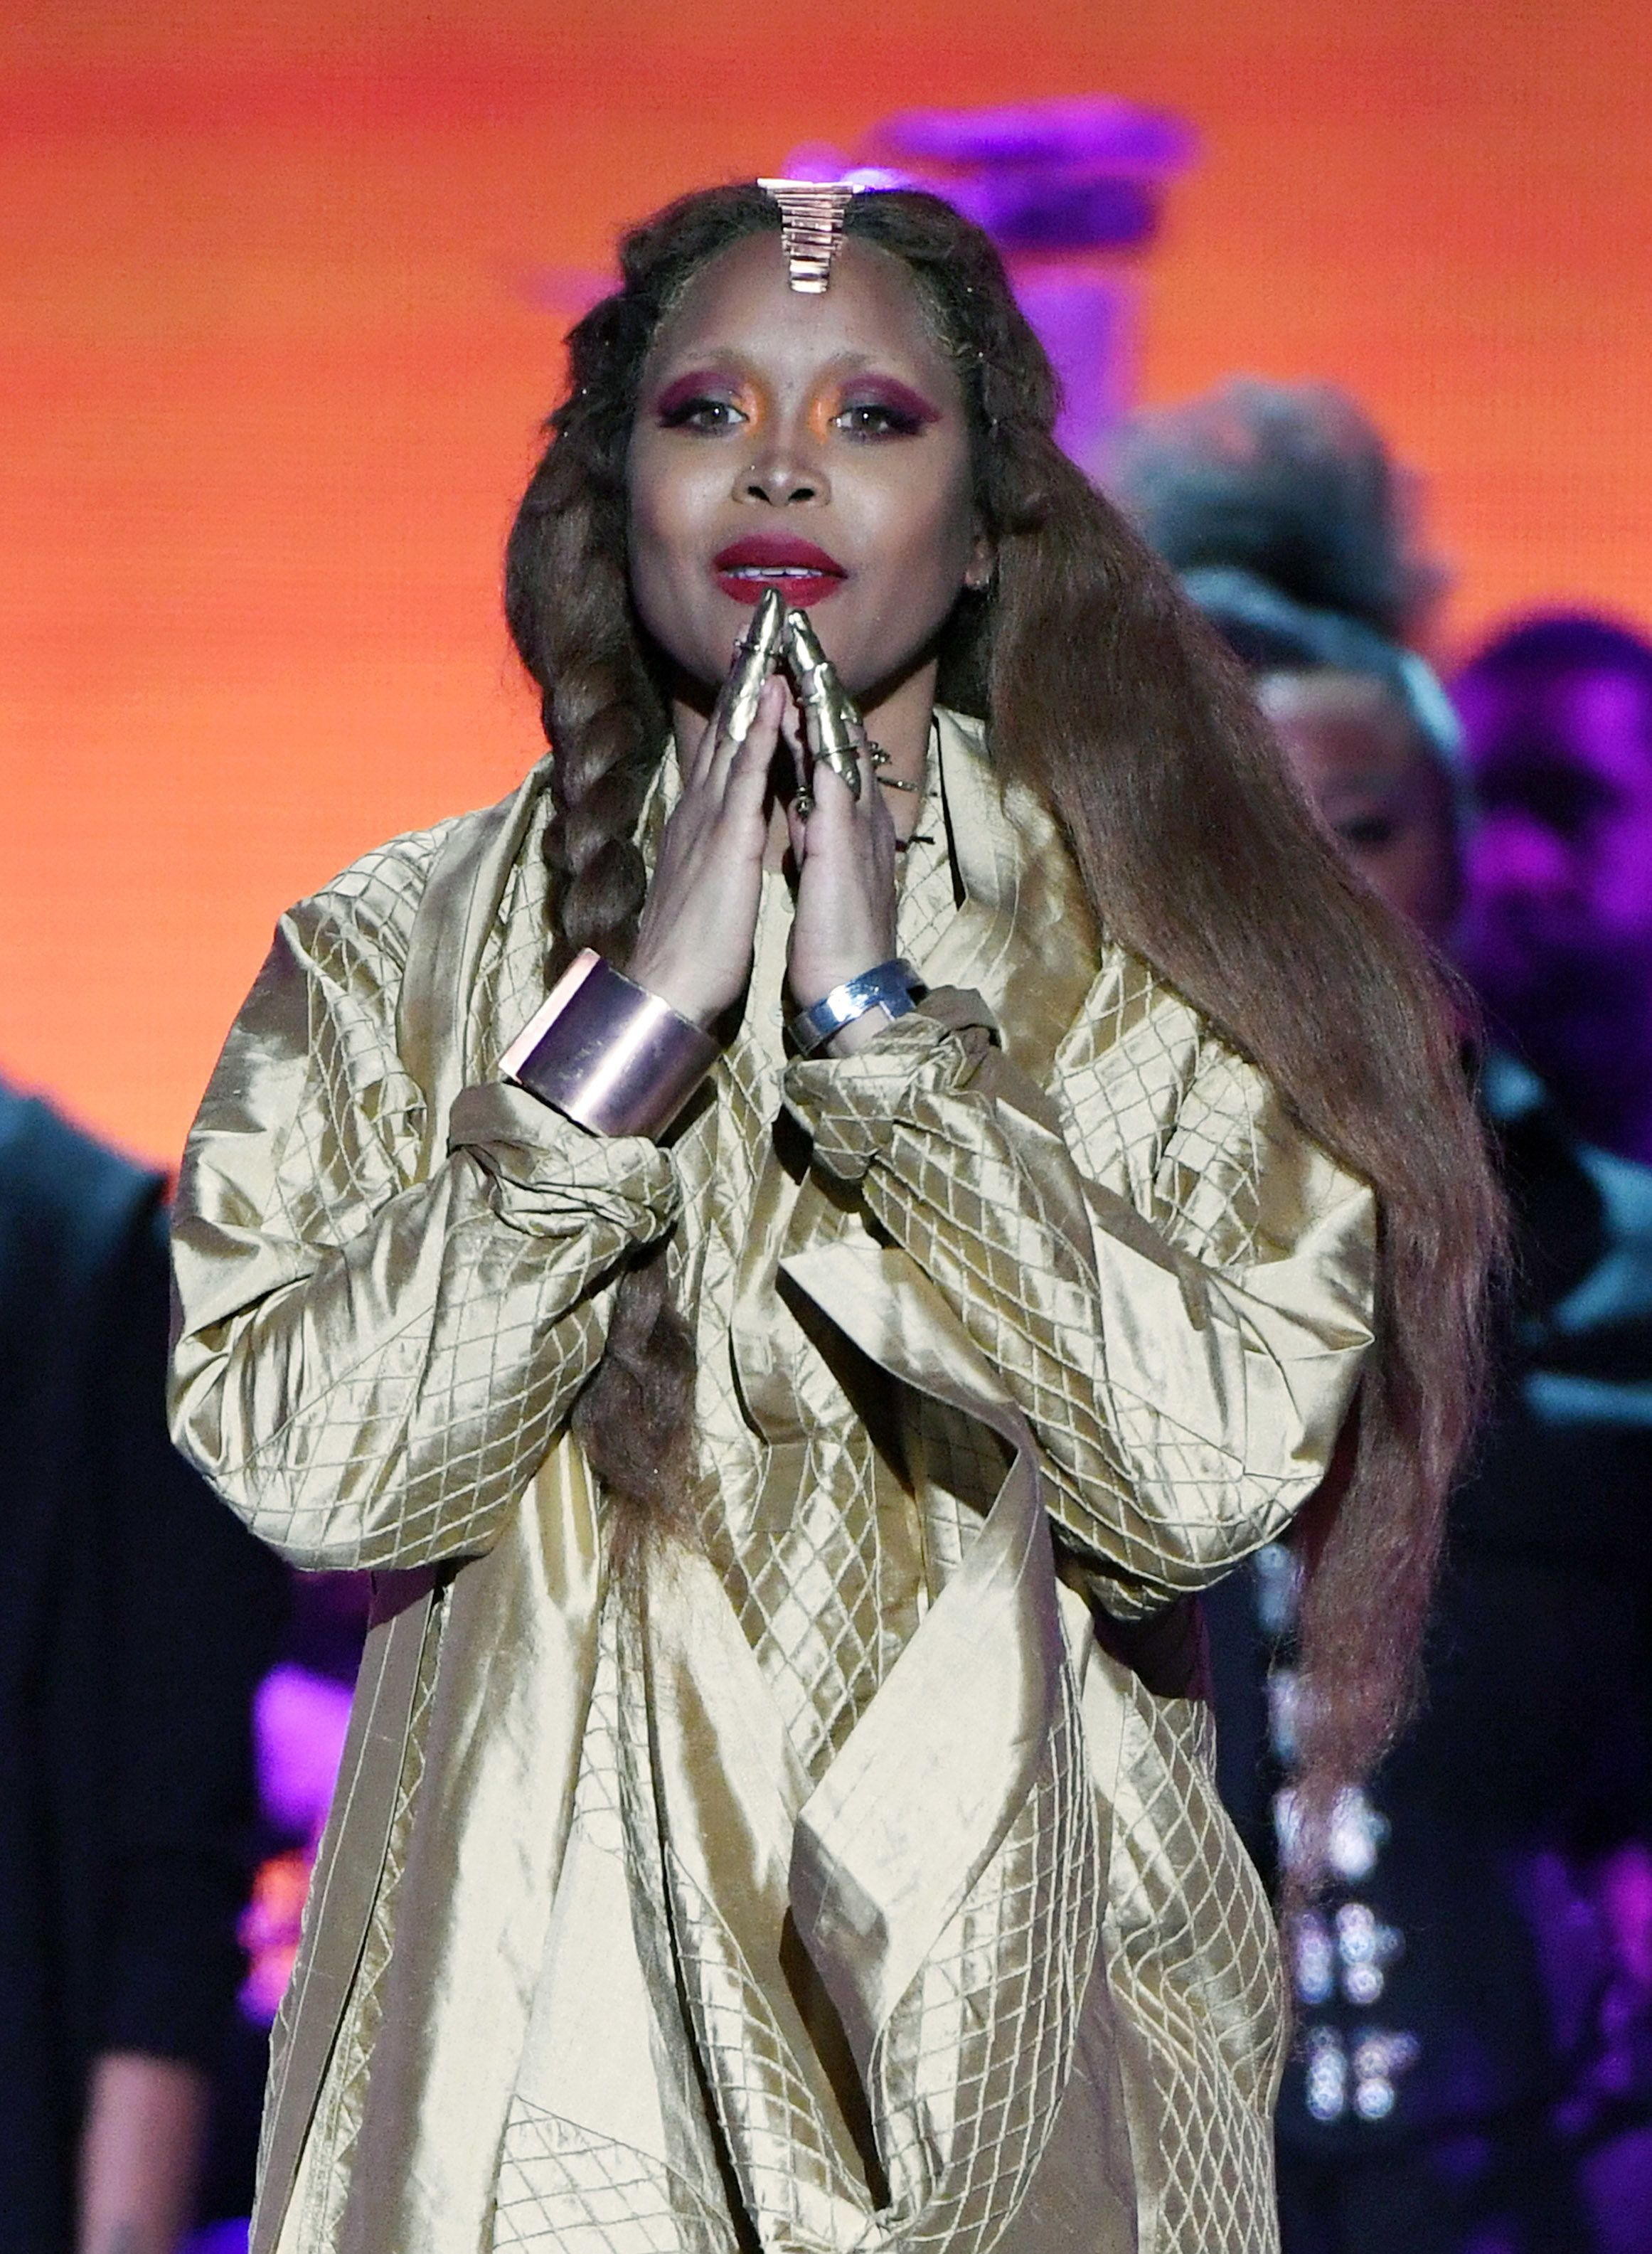 Erykah Badu Says She's 'Putting Up A Prayer' For R. Kelly At Chicago Concert. Twitter Erupts